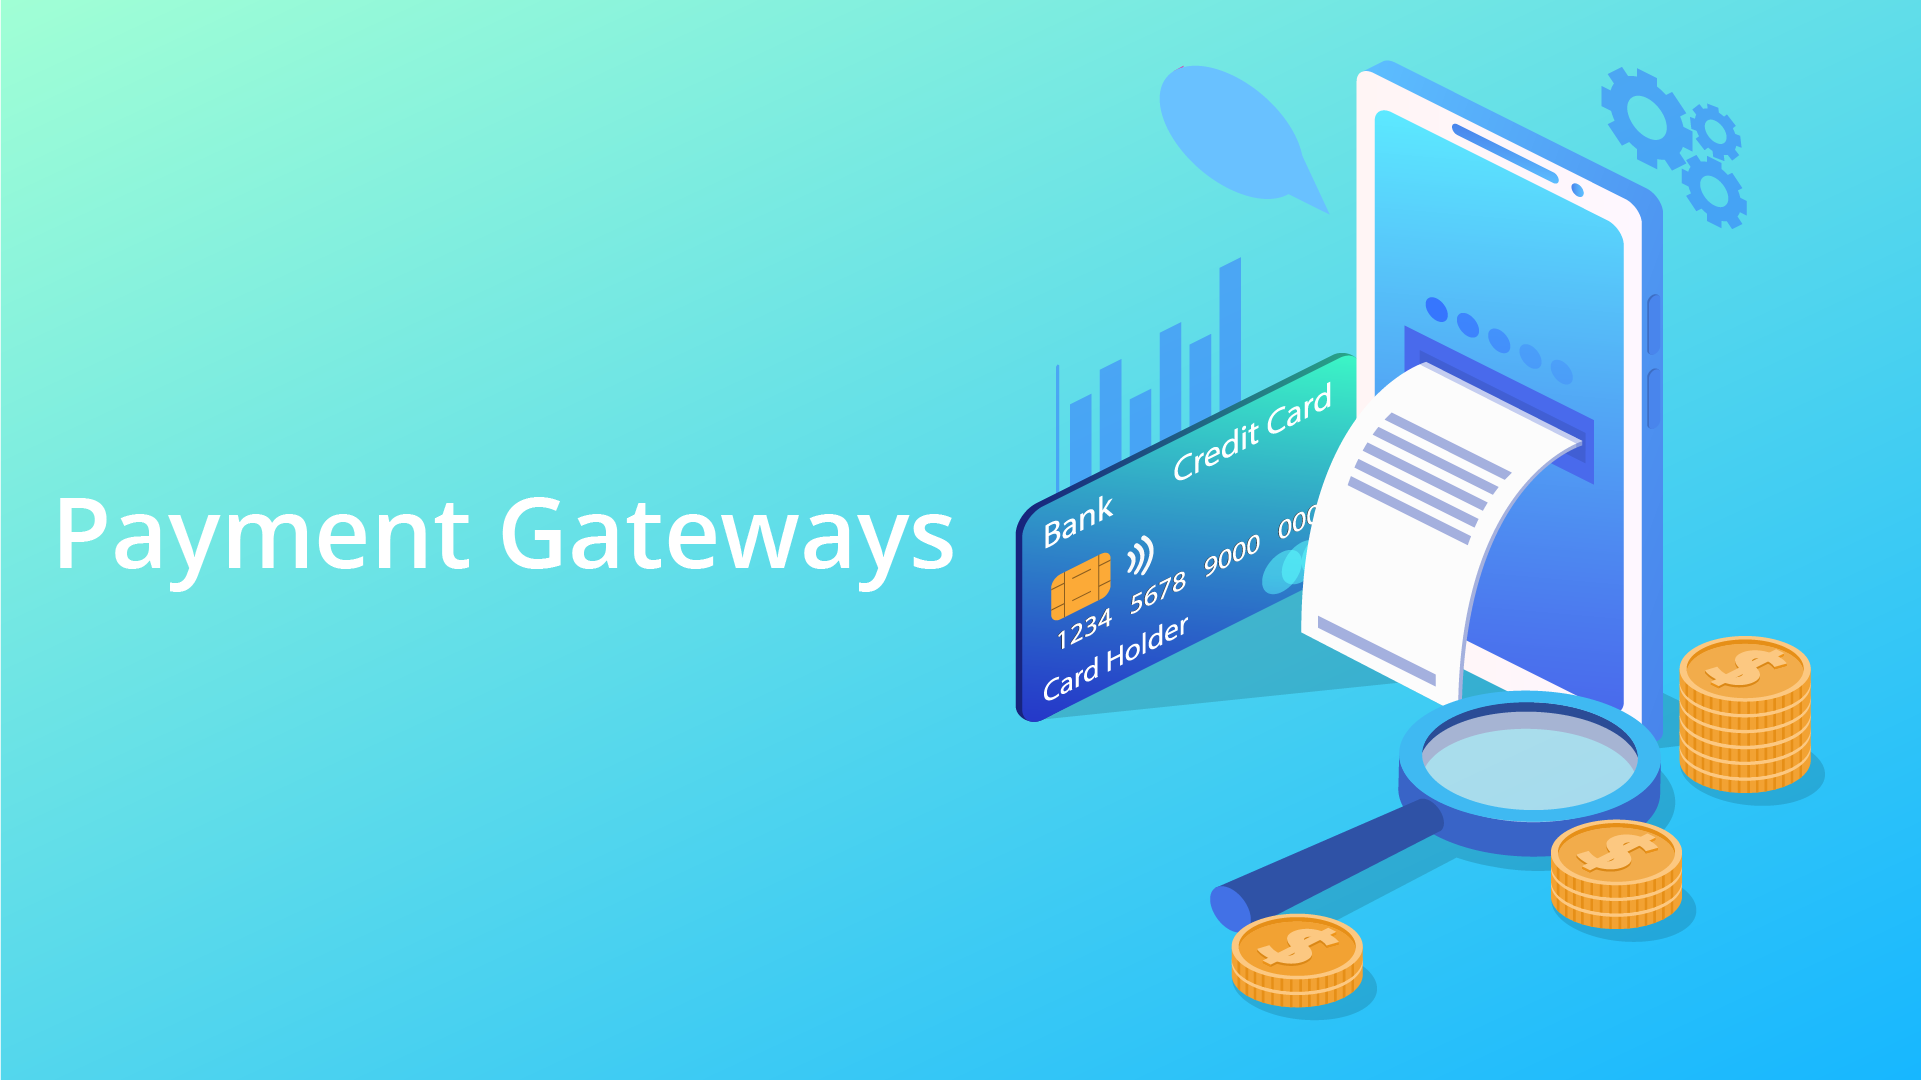 //www.kpweb.in/wp-content/uploads/2019/10/payment-gateways.png